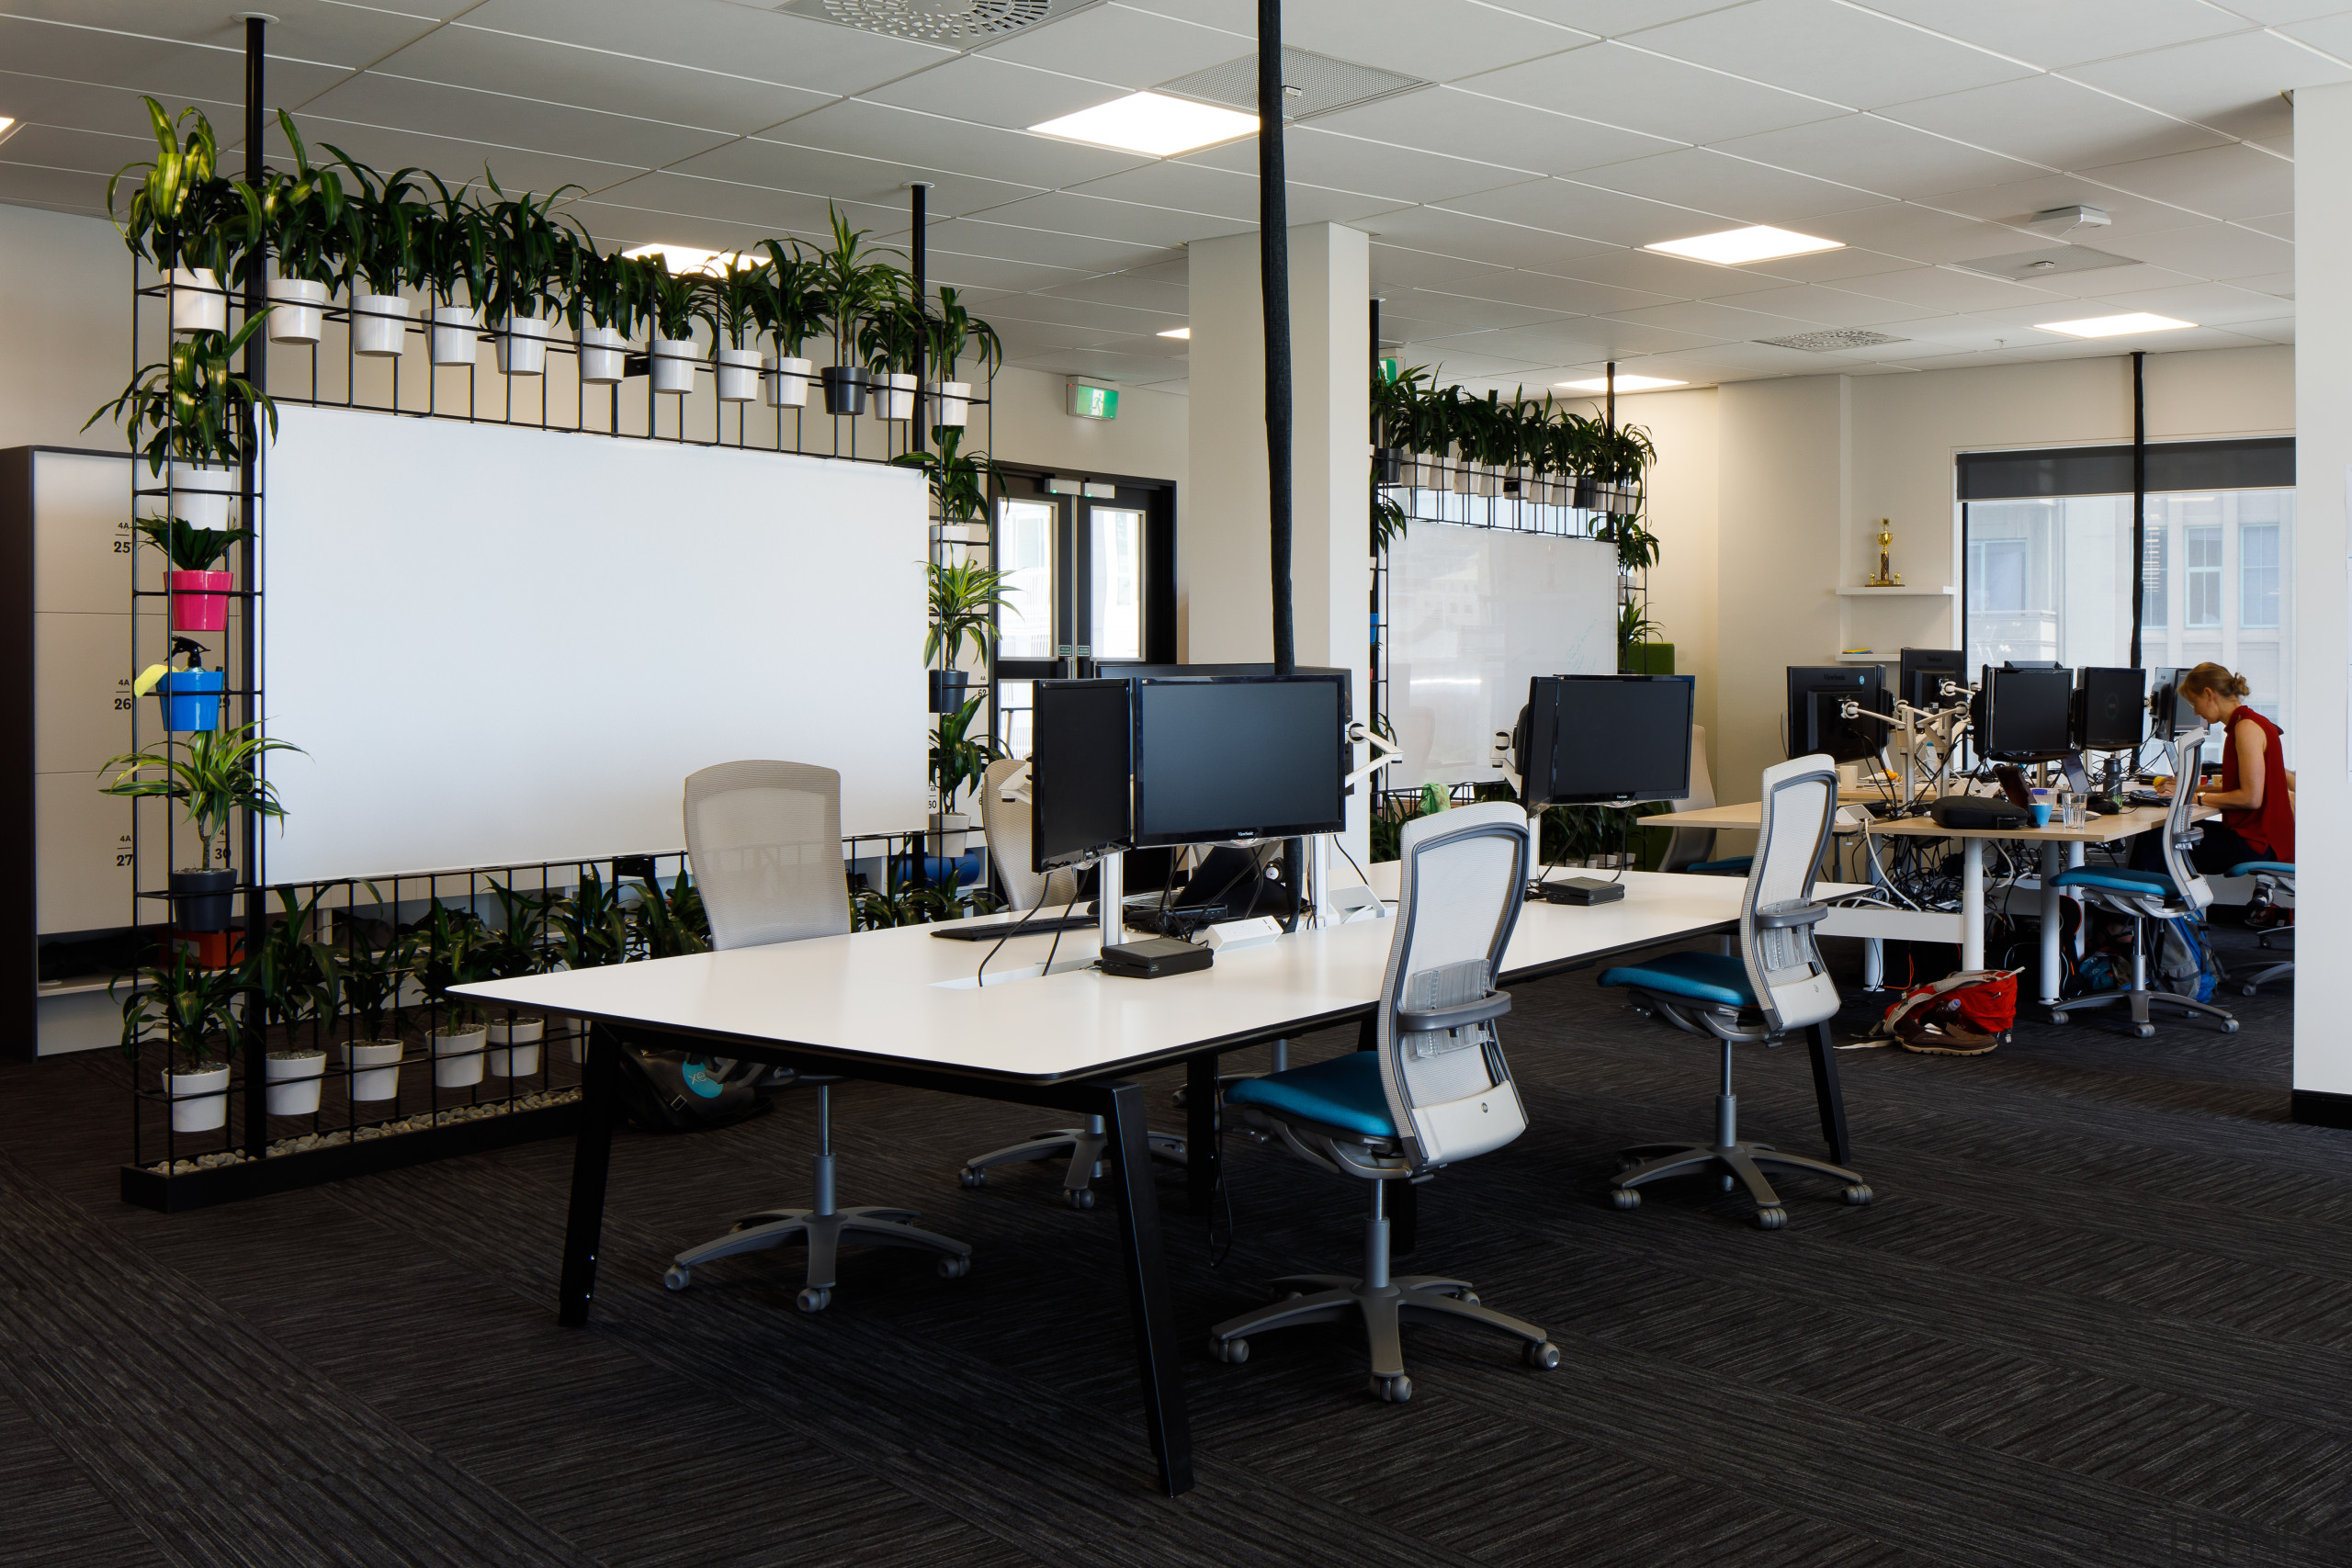 The reinvented and extended heritage building now contains architecture, building, design, desk, furniture, interior design, office, office chair, room, table, black, gray